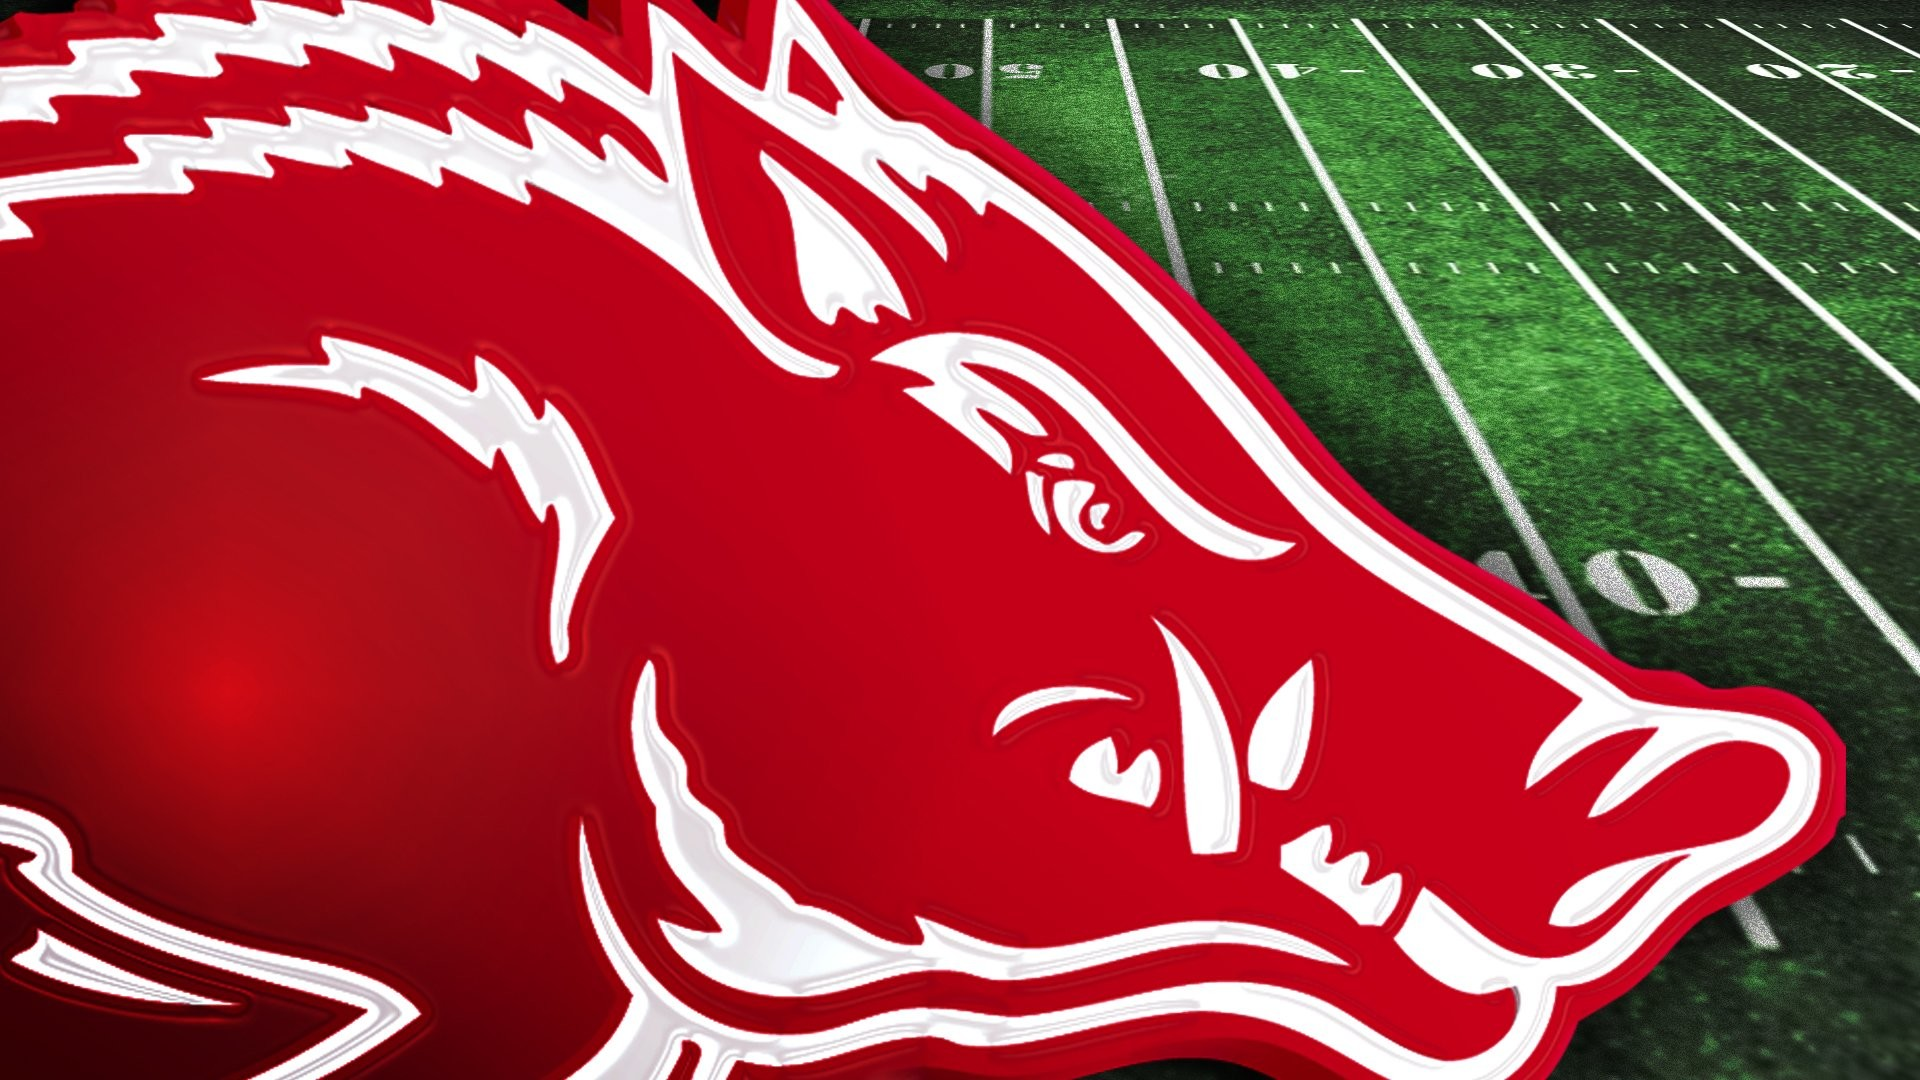 1920x1080 ARKANSAS RAZORBACKS college football wallpaper |  | 593920 .